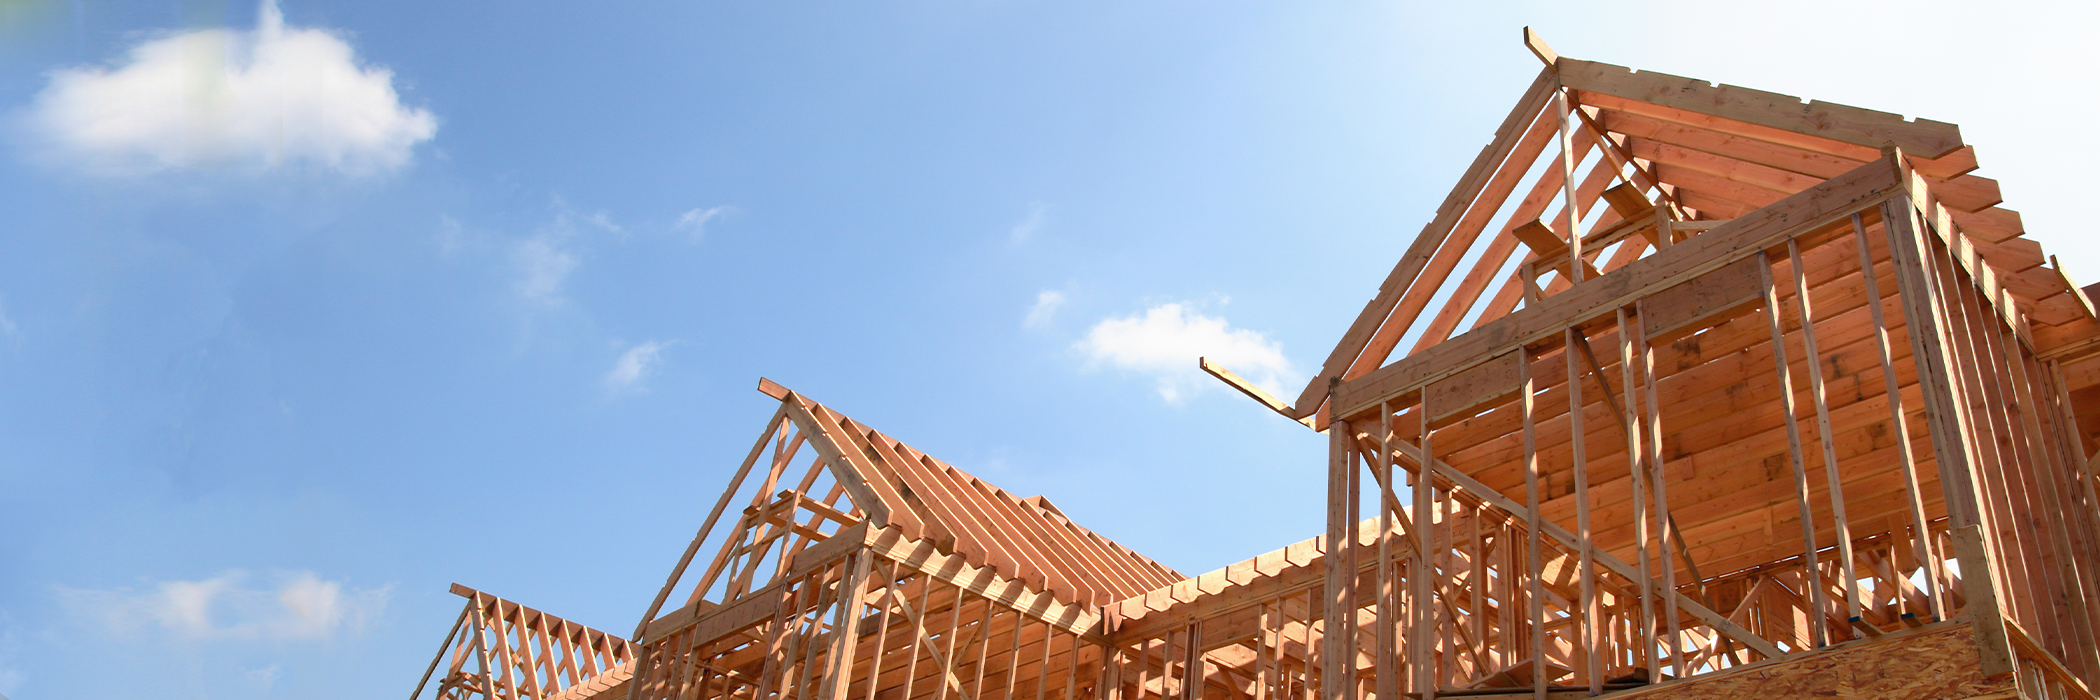 Wooden frame of a new house under construction against a bright sunny sky.